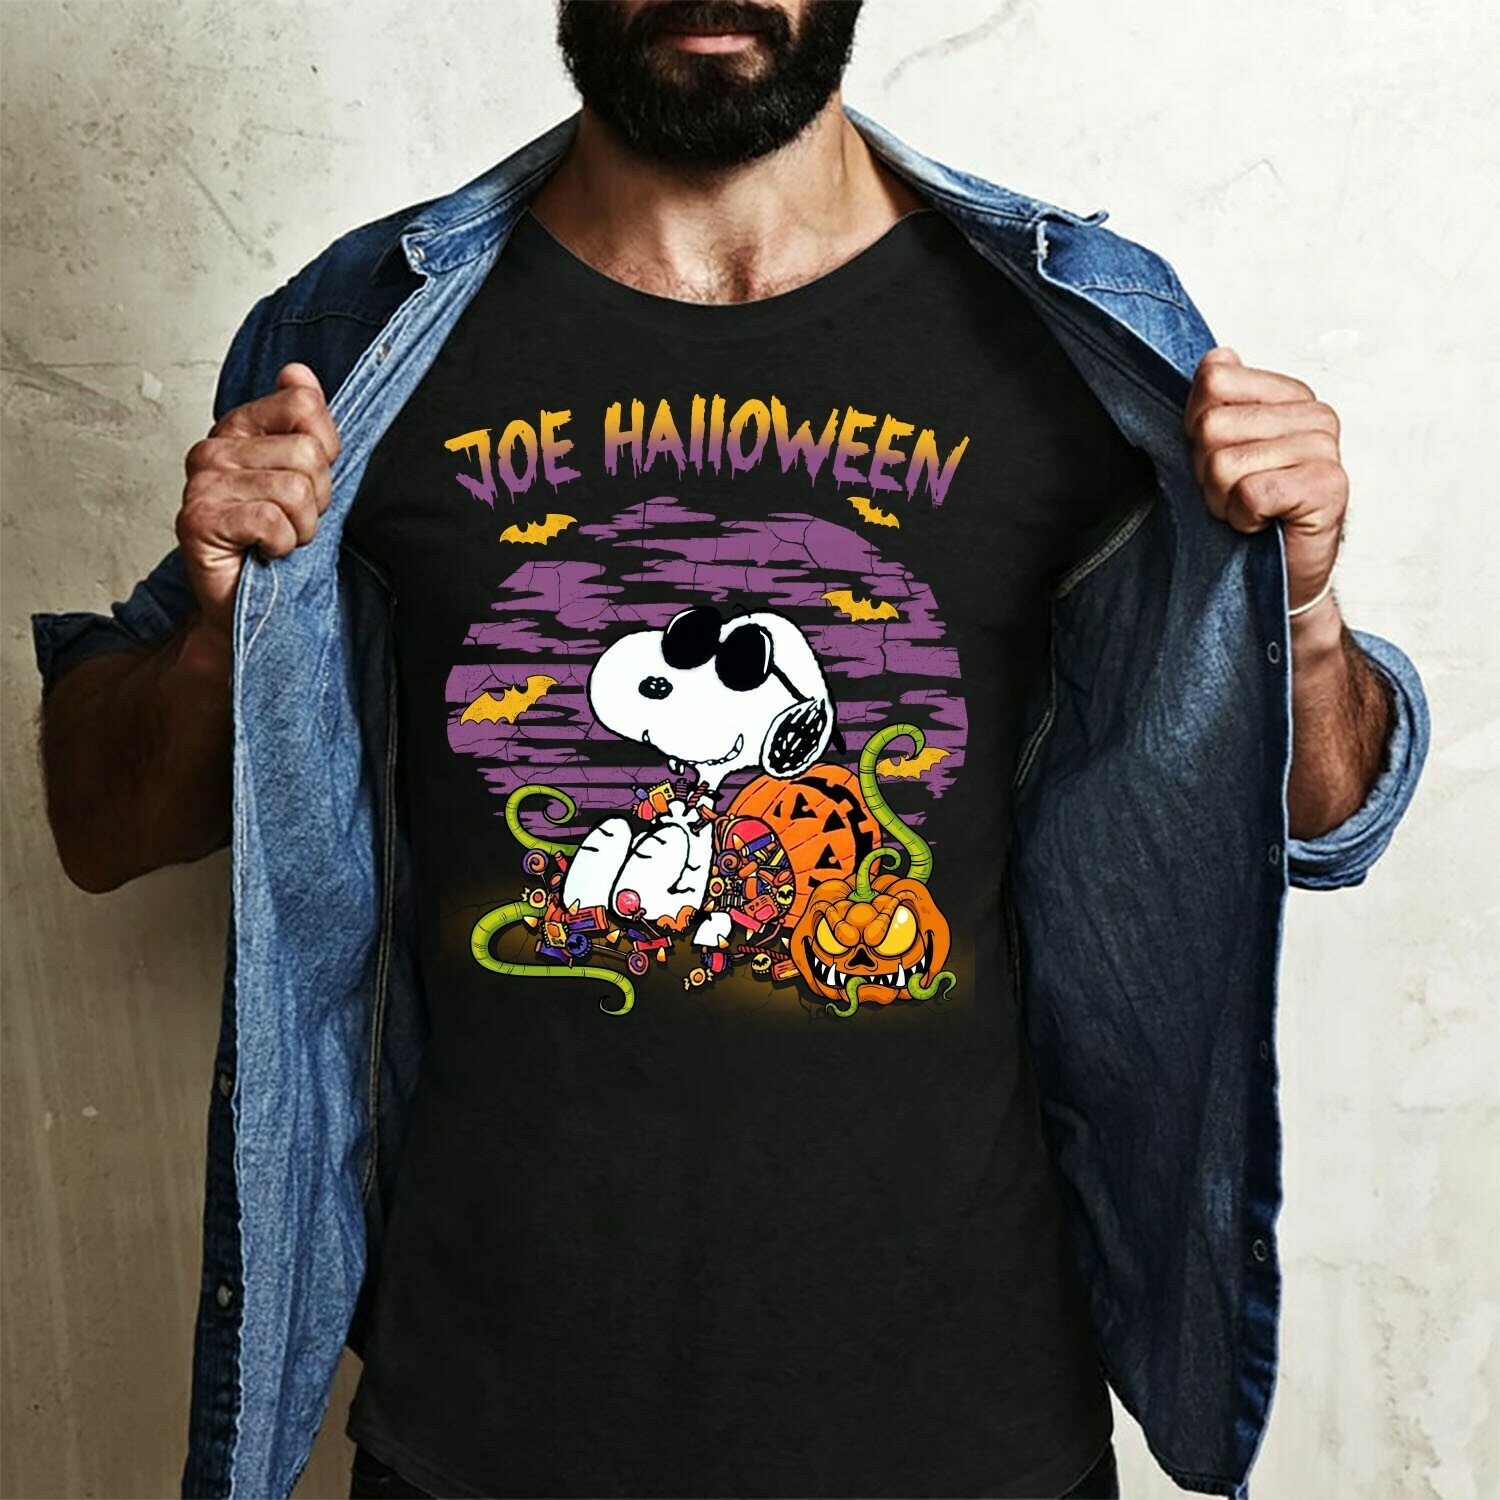 Snoopy Joe Halloween Pumpkin Candy Trick Or Treat Costume Gifts for Best Friend Family Vacation Gifts T-Shirt Long Sleeve Sweatshirt Hoodie Jolly Family Gifts